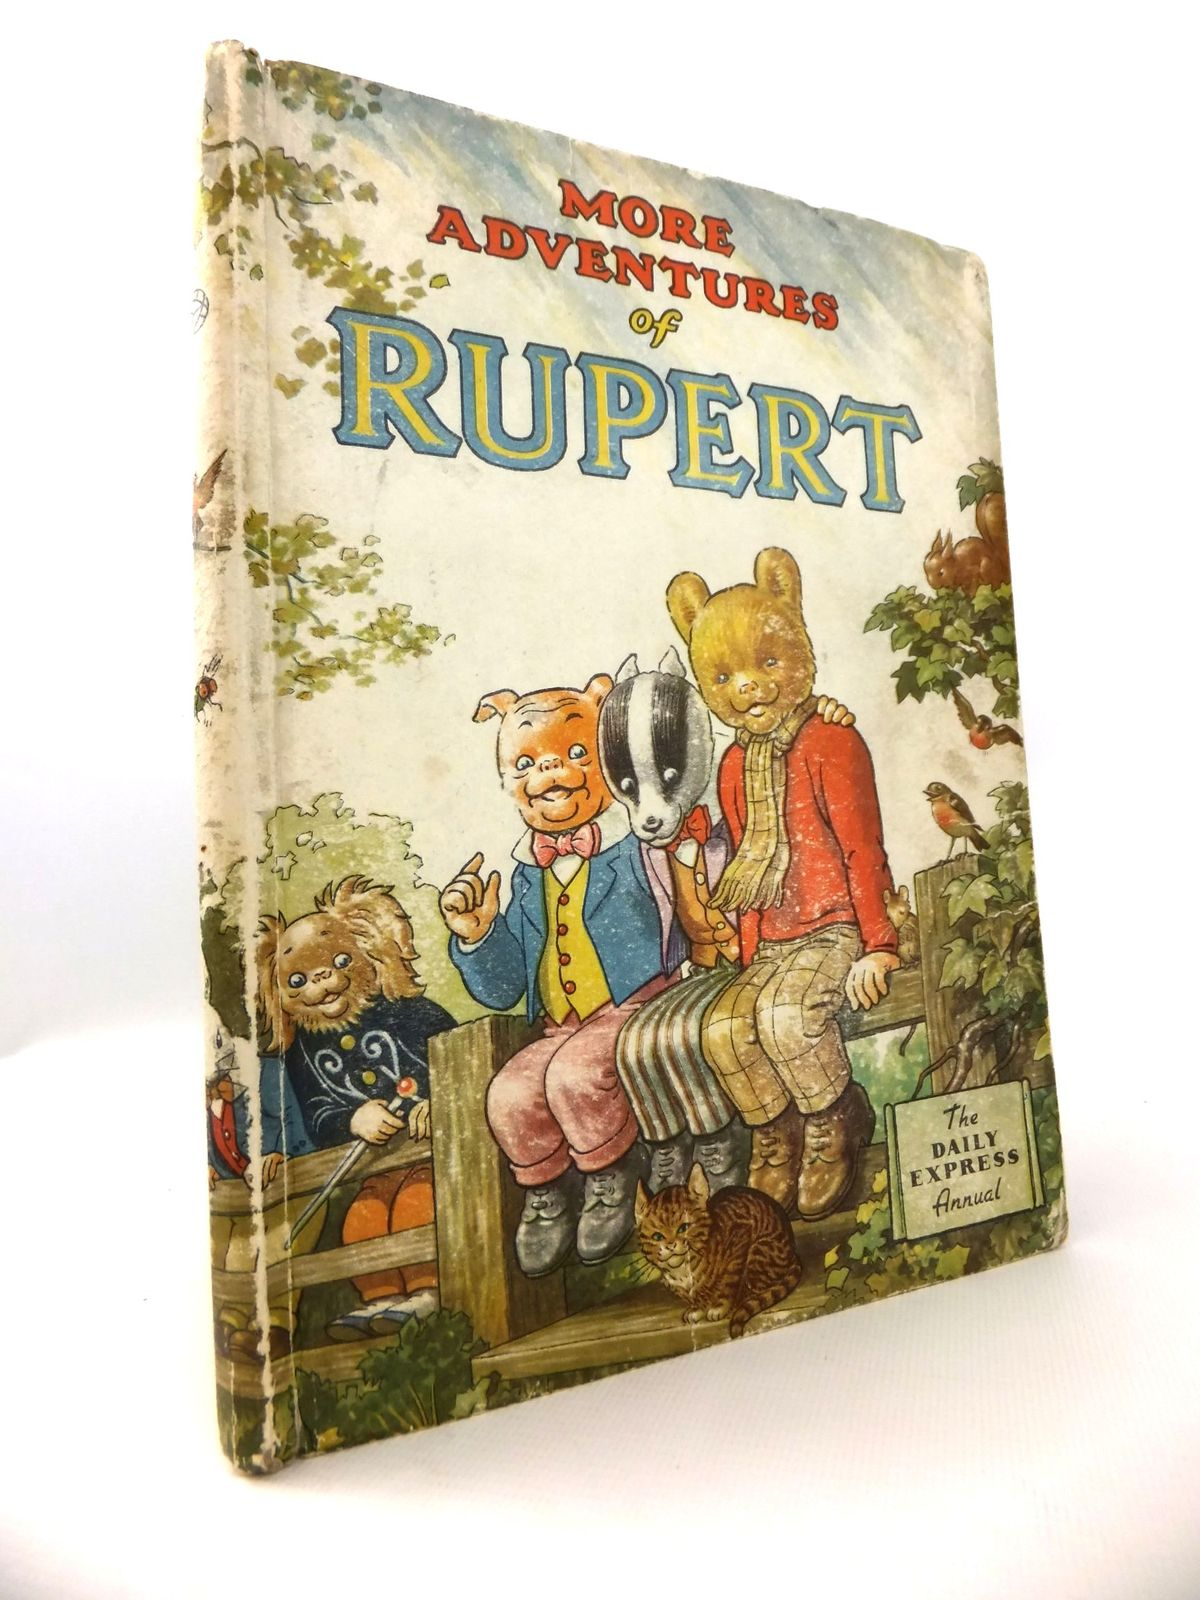 Photo of RUPERT ANNUAL 1953 - MORE ADVENTURES OF RUPERT written by Bestall, Alfred illustrated by Bestall, Alfred published by Daily Express (STOCK CODE: 1812695)  for sale by Stella & Rose's Books